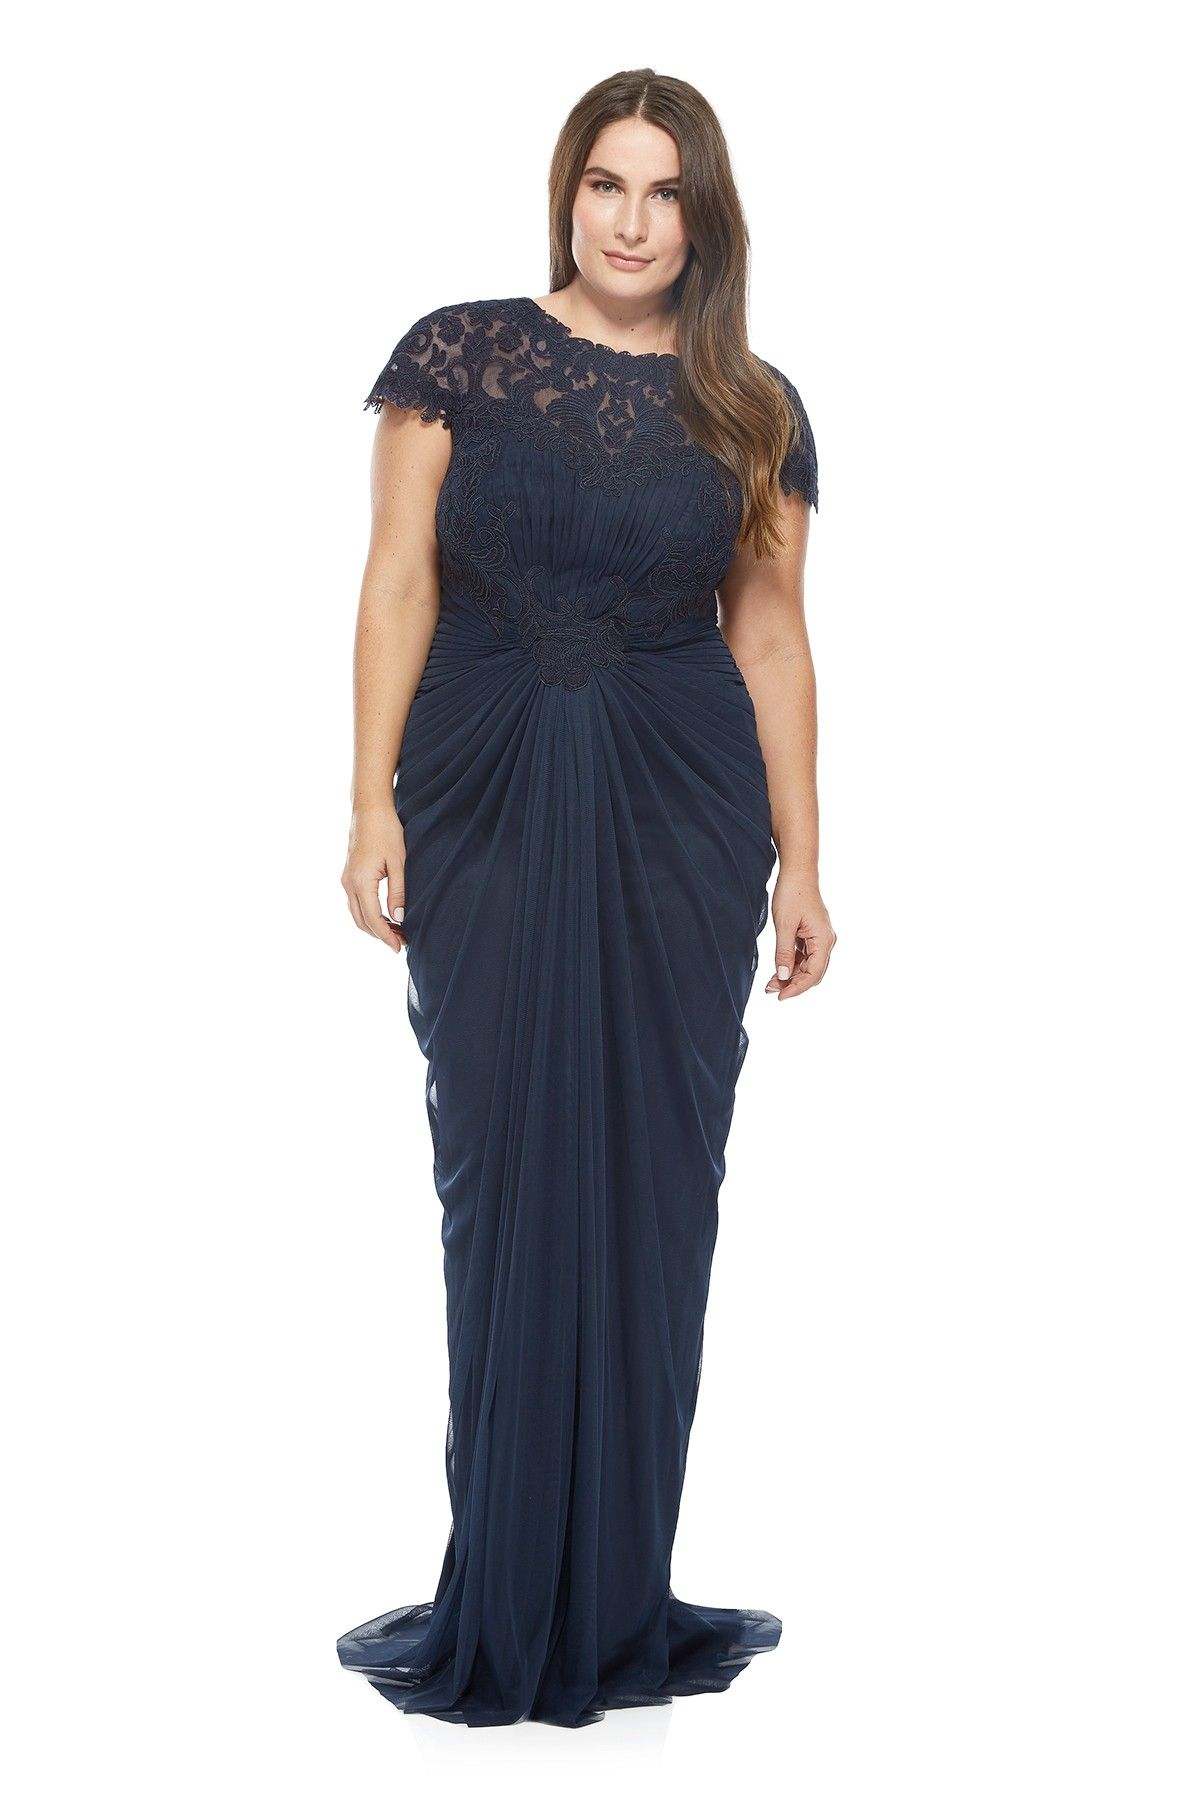 Corded lace and draped tulle gown plus size tadashi shoji